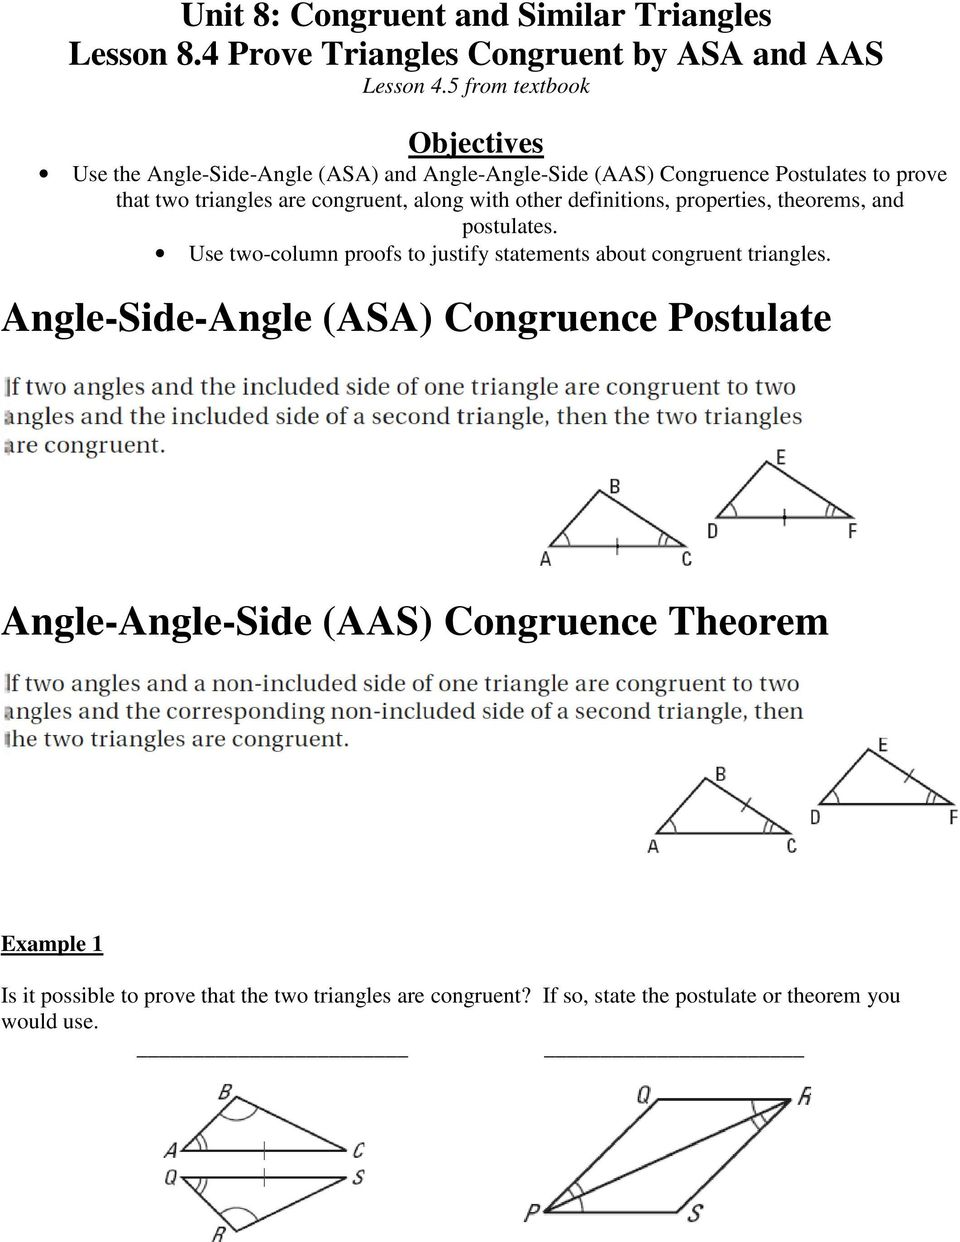 along with other definitions, properties, theorems, and postulates. Use two-column proofs to justify statements about congruent triangles.